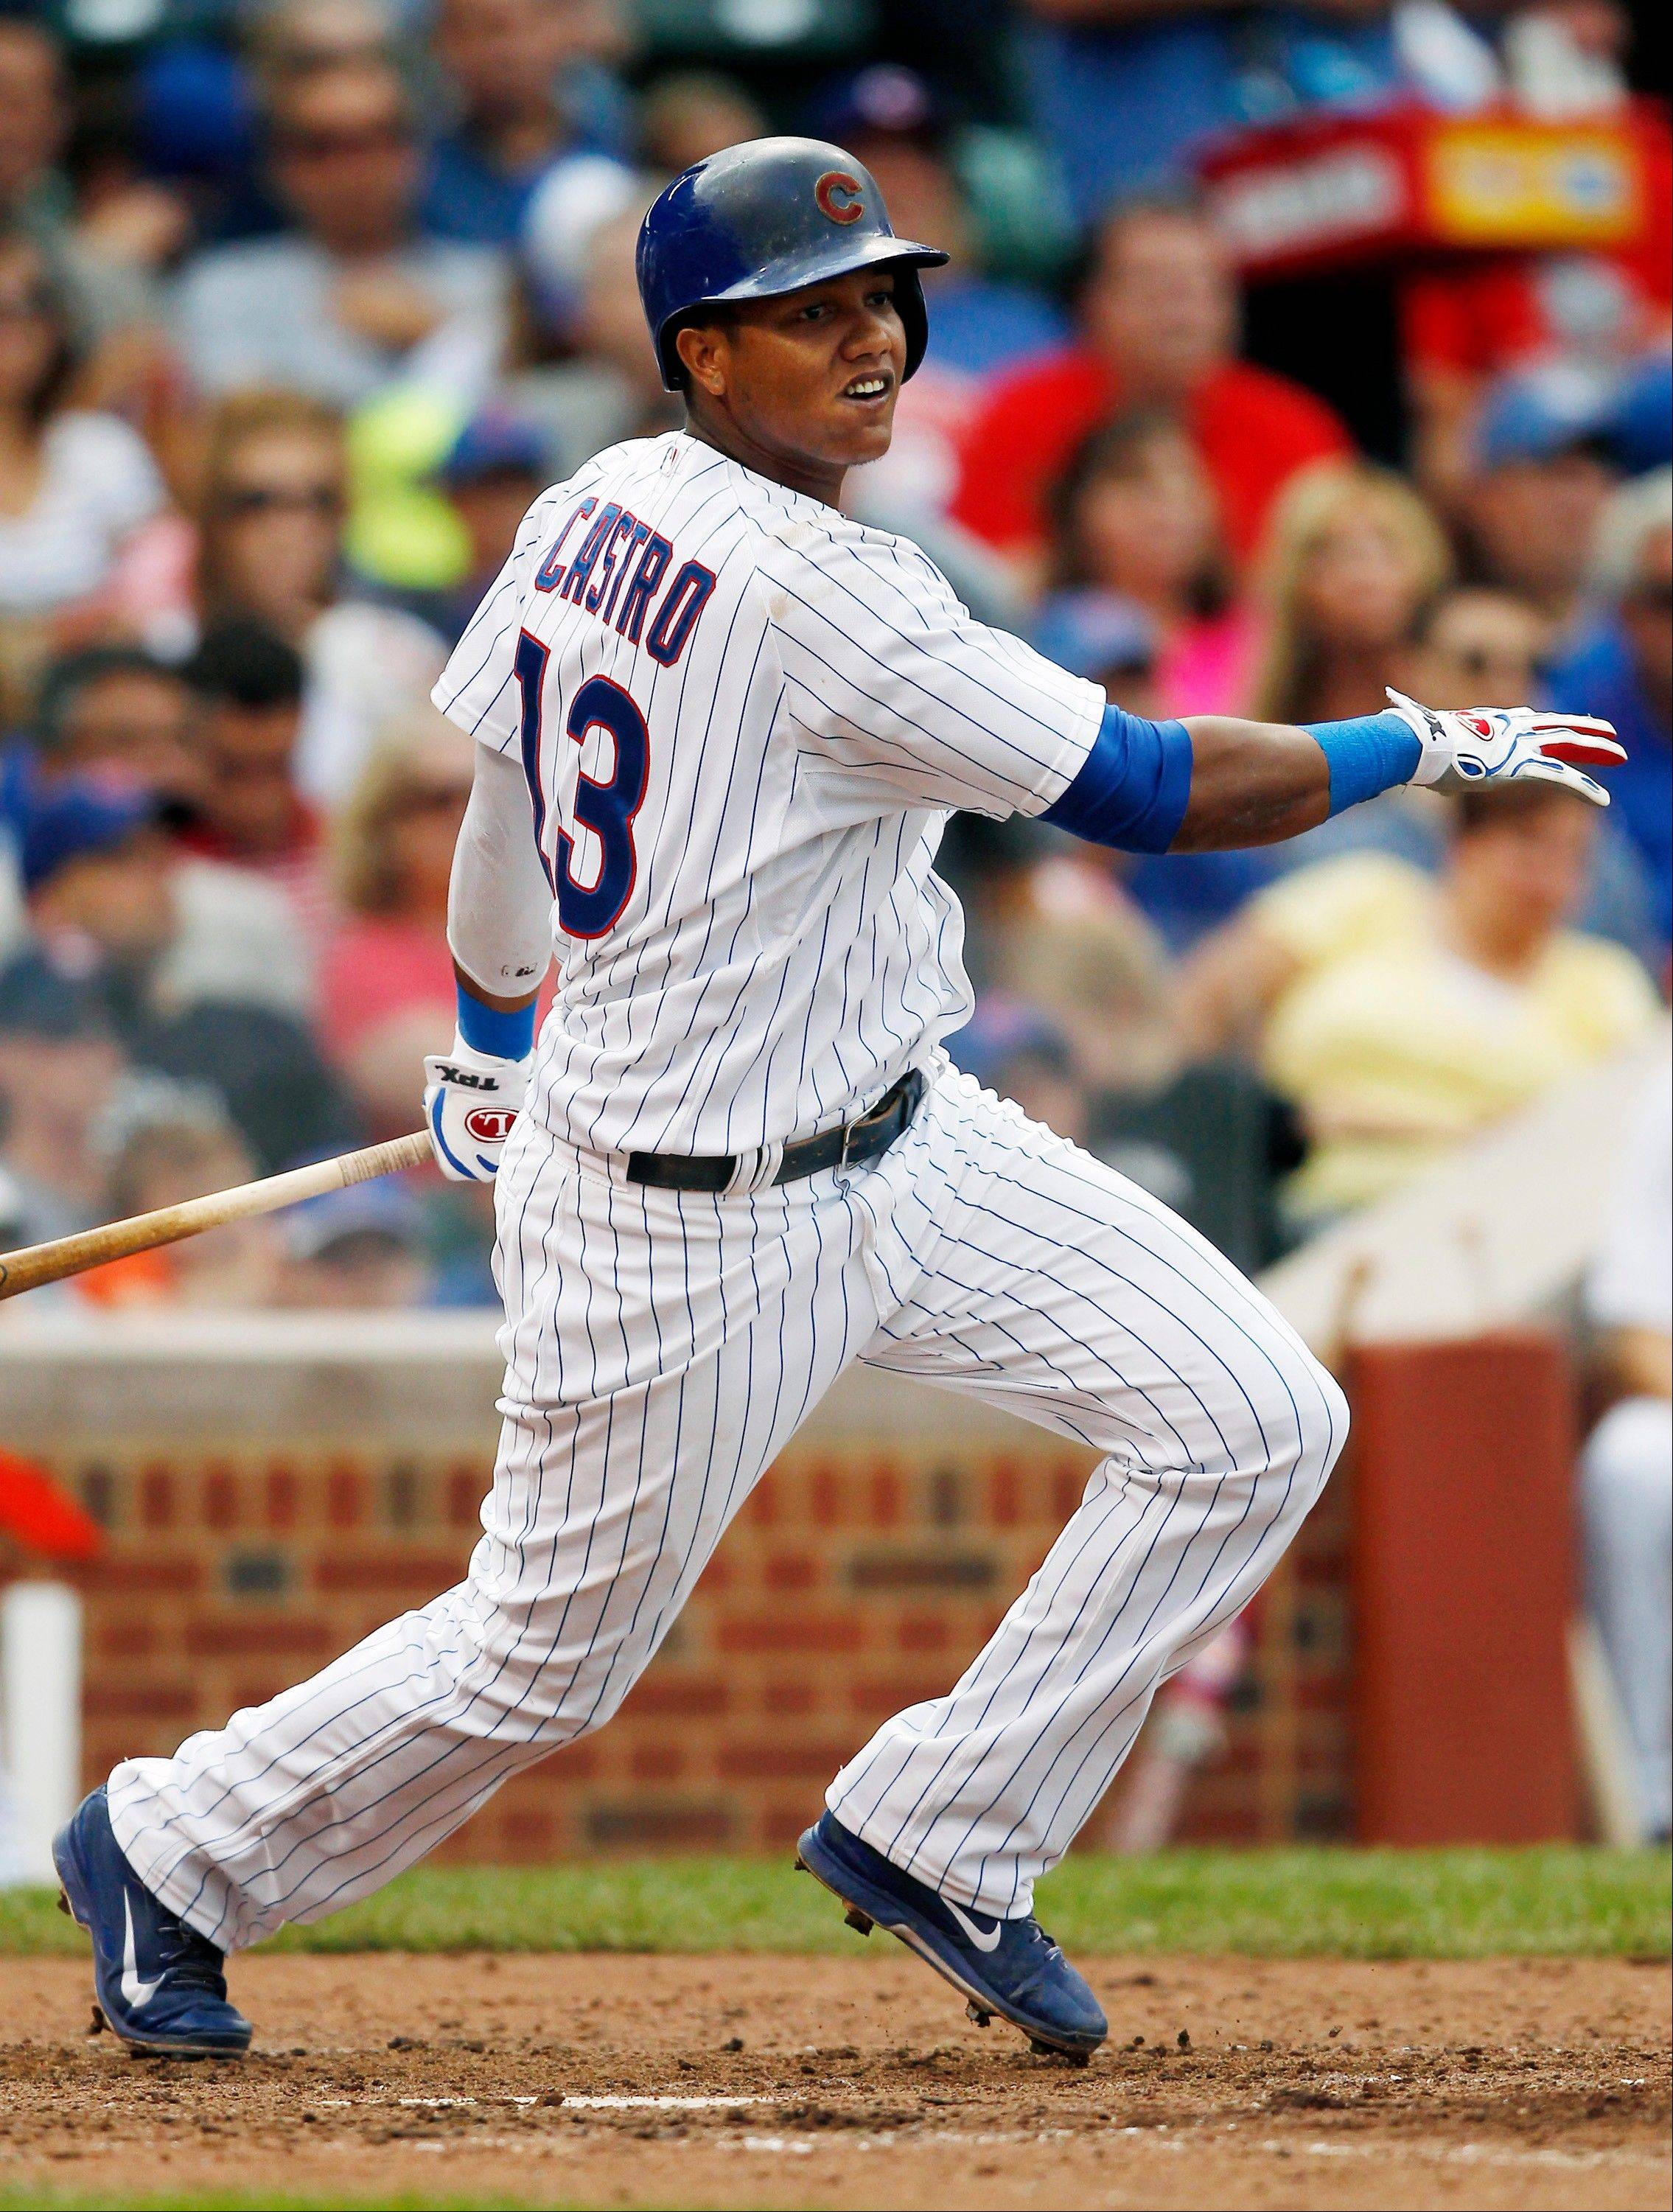 Starlin Castro hits a double against the Philadelphia Phillies during the fourth inning.